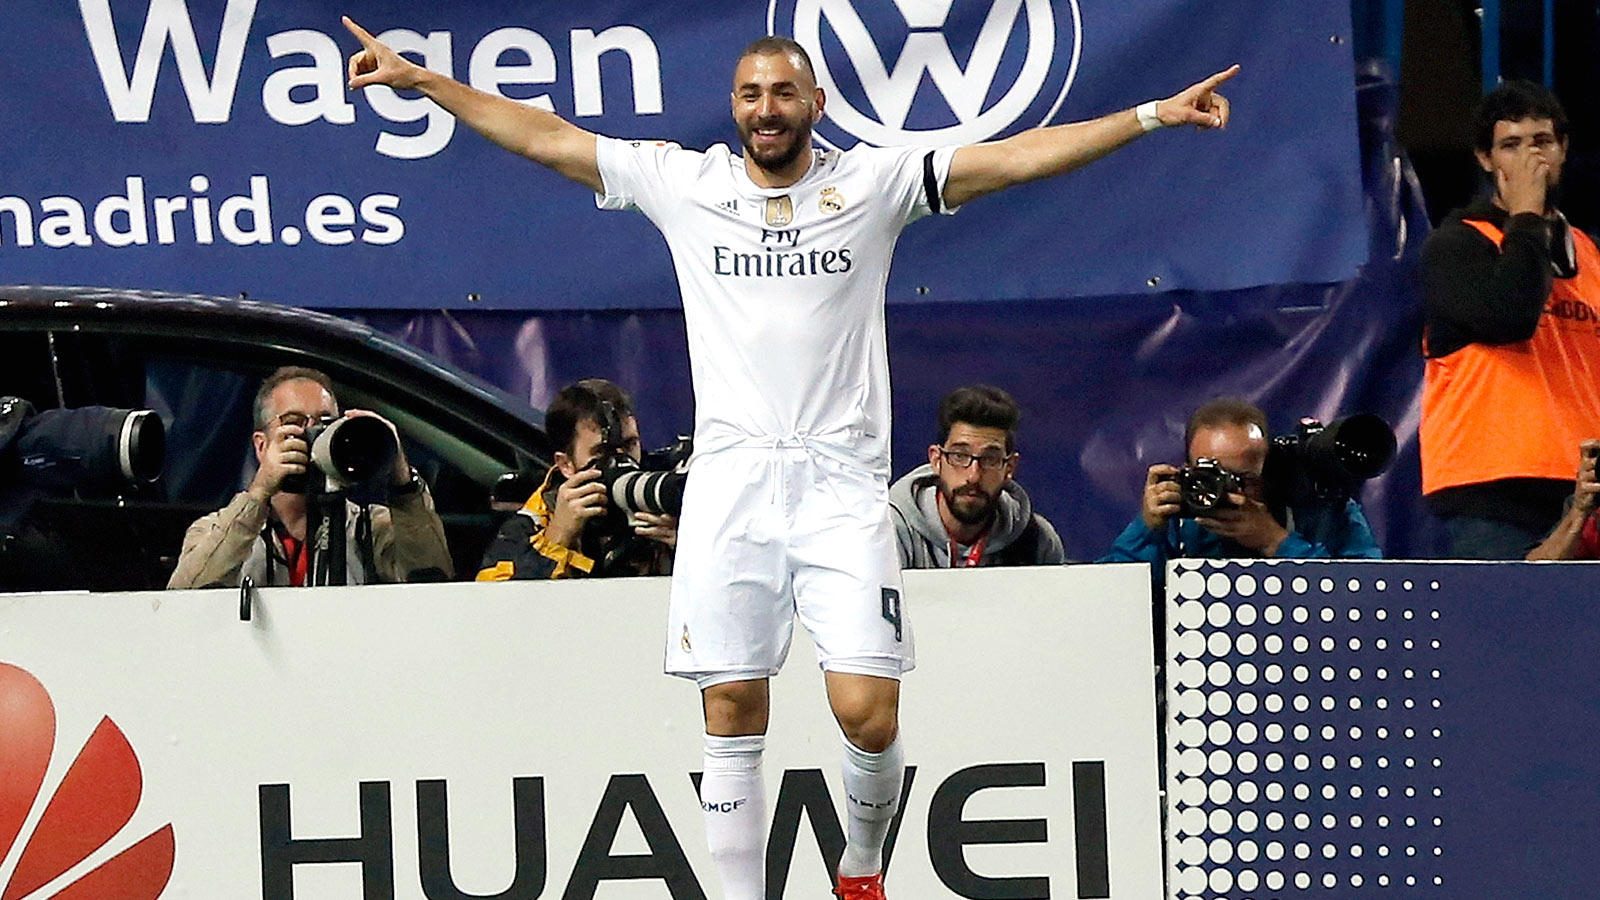 Arsenal on red alert in chase for Real Madrid's Karim Benzema